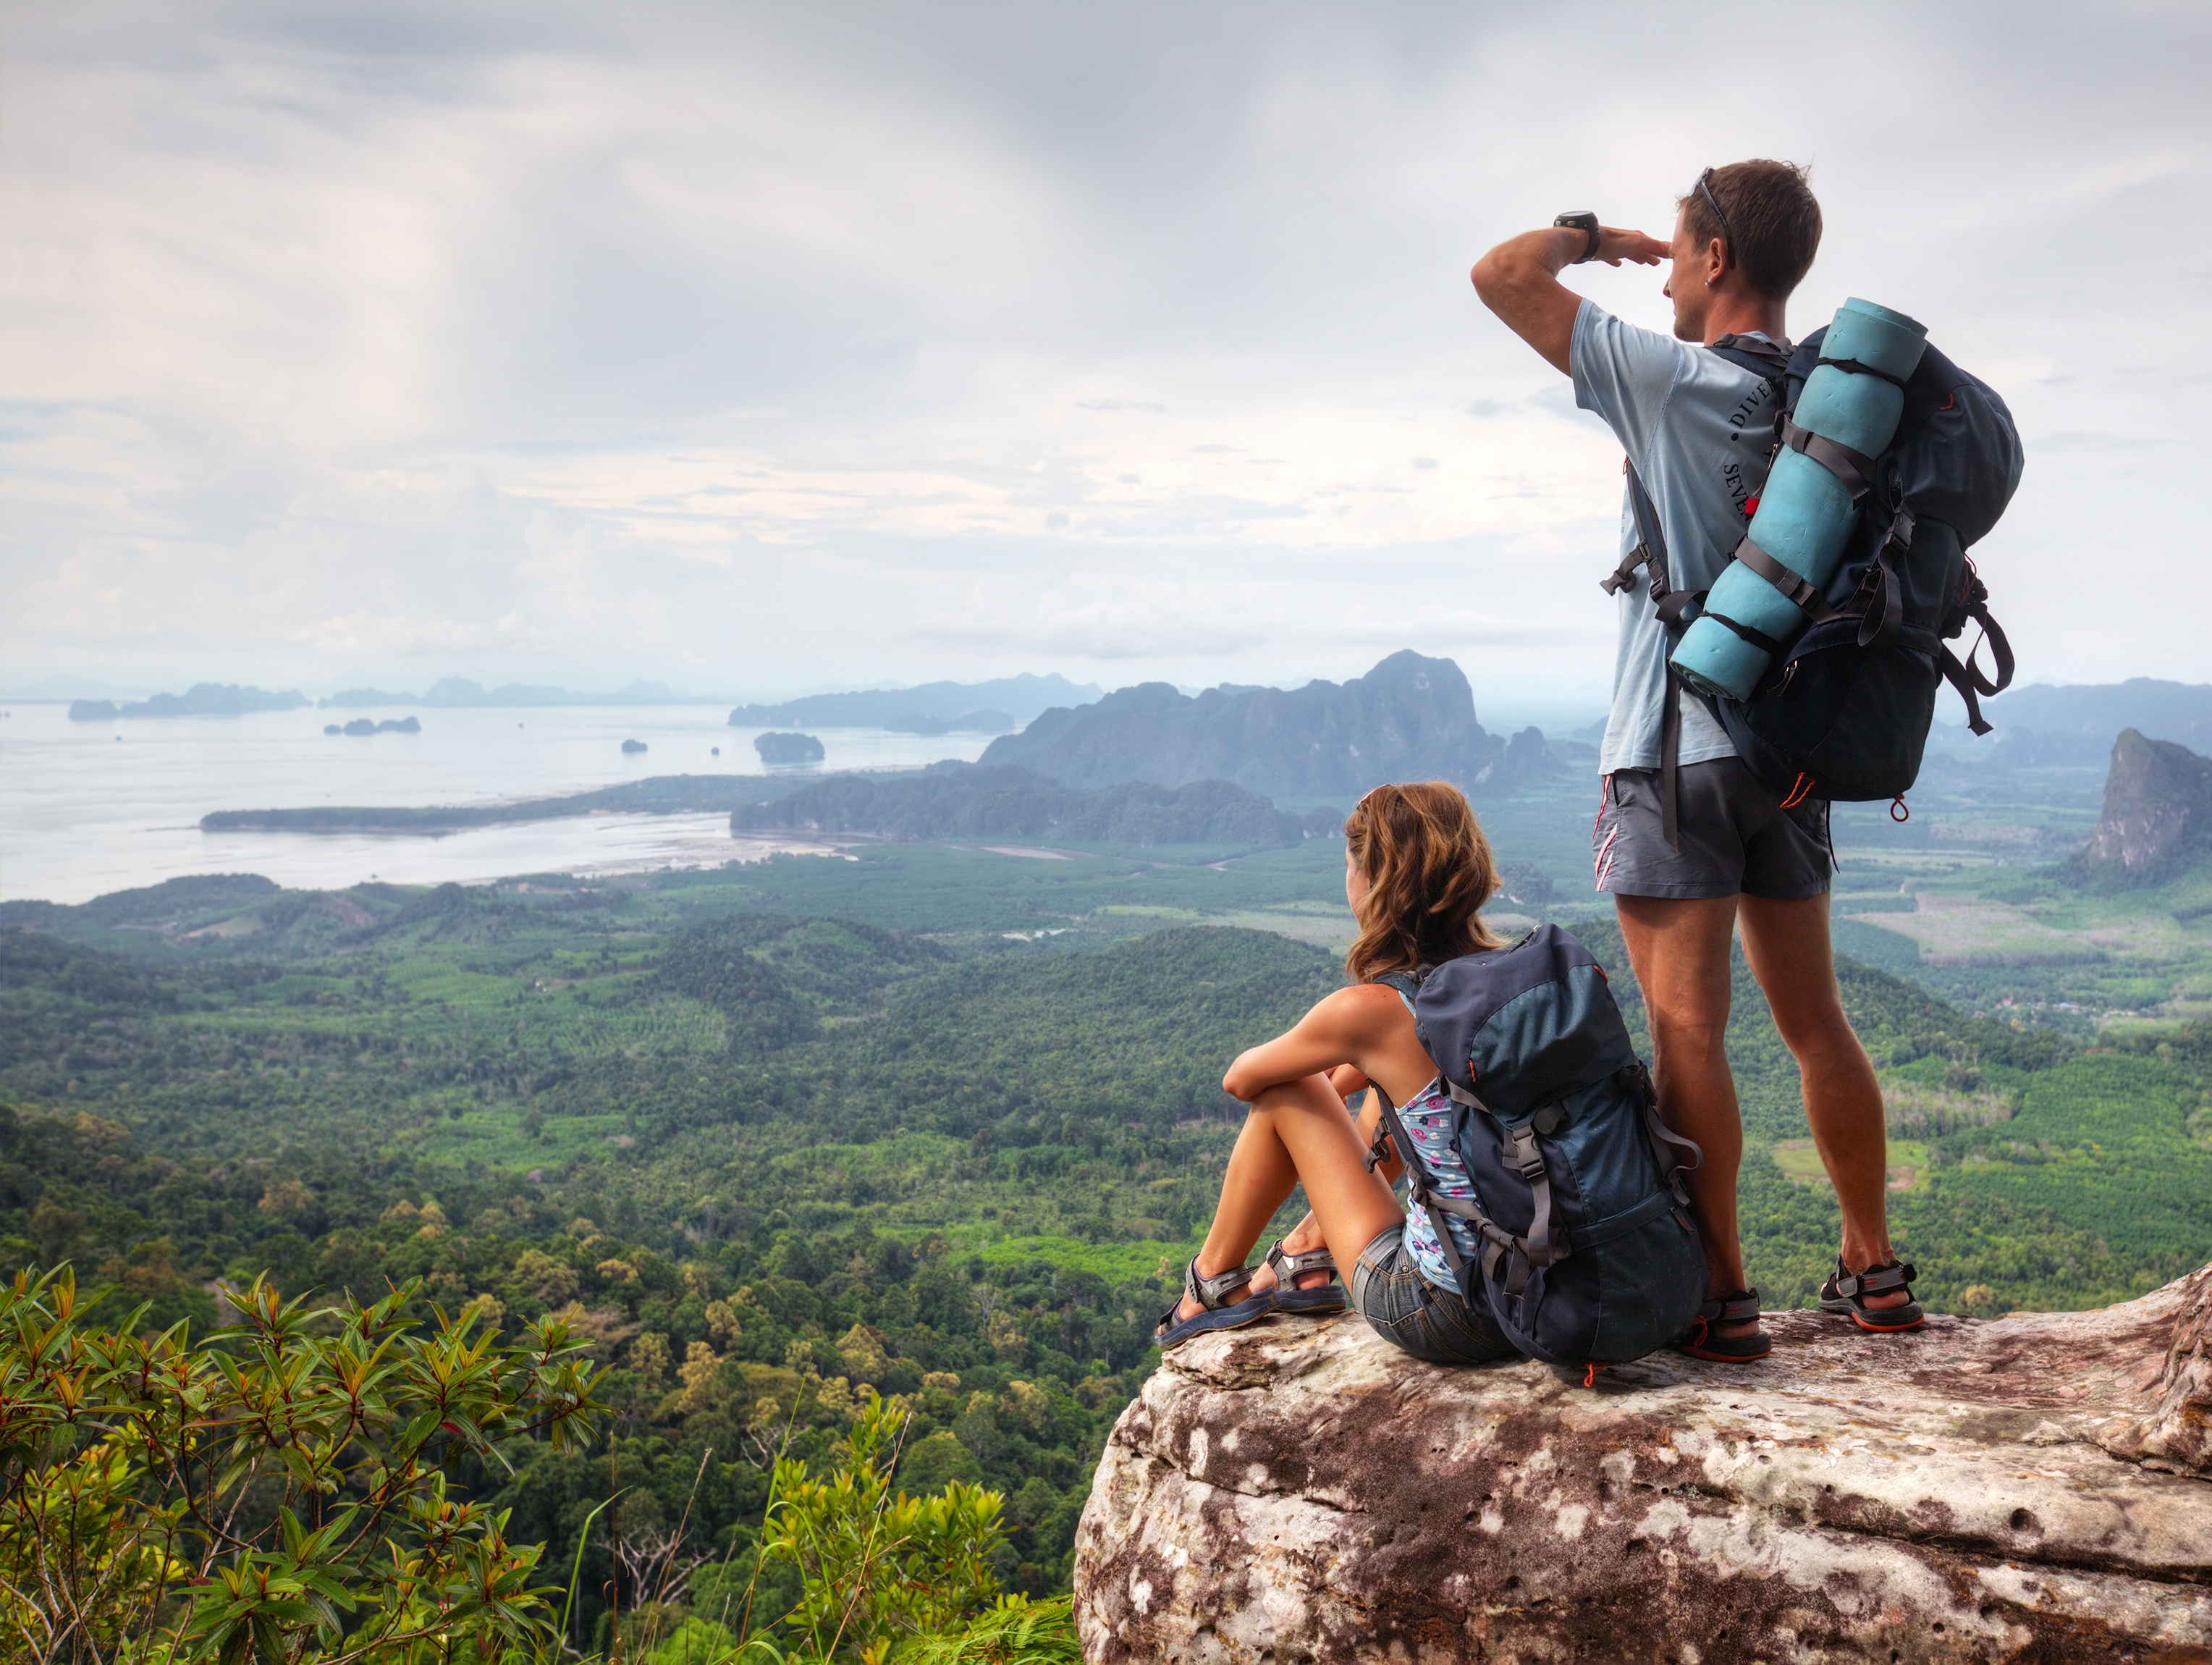 Things You Can Do In The Great Outdoors